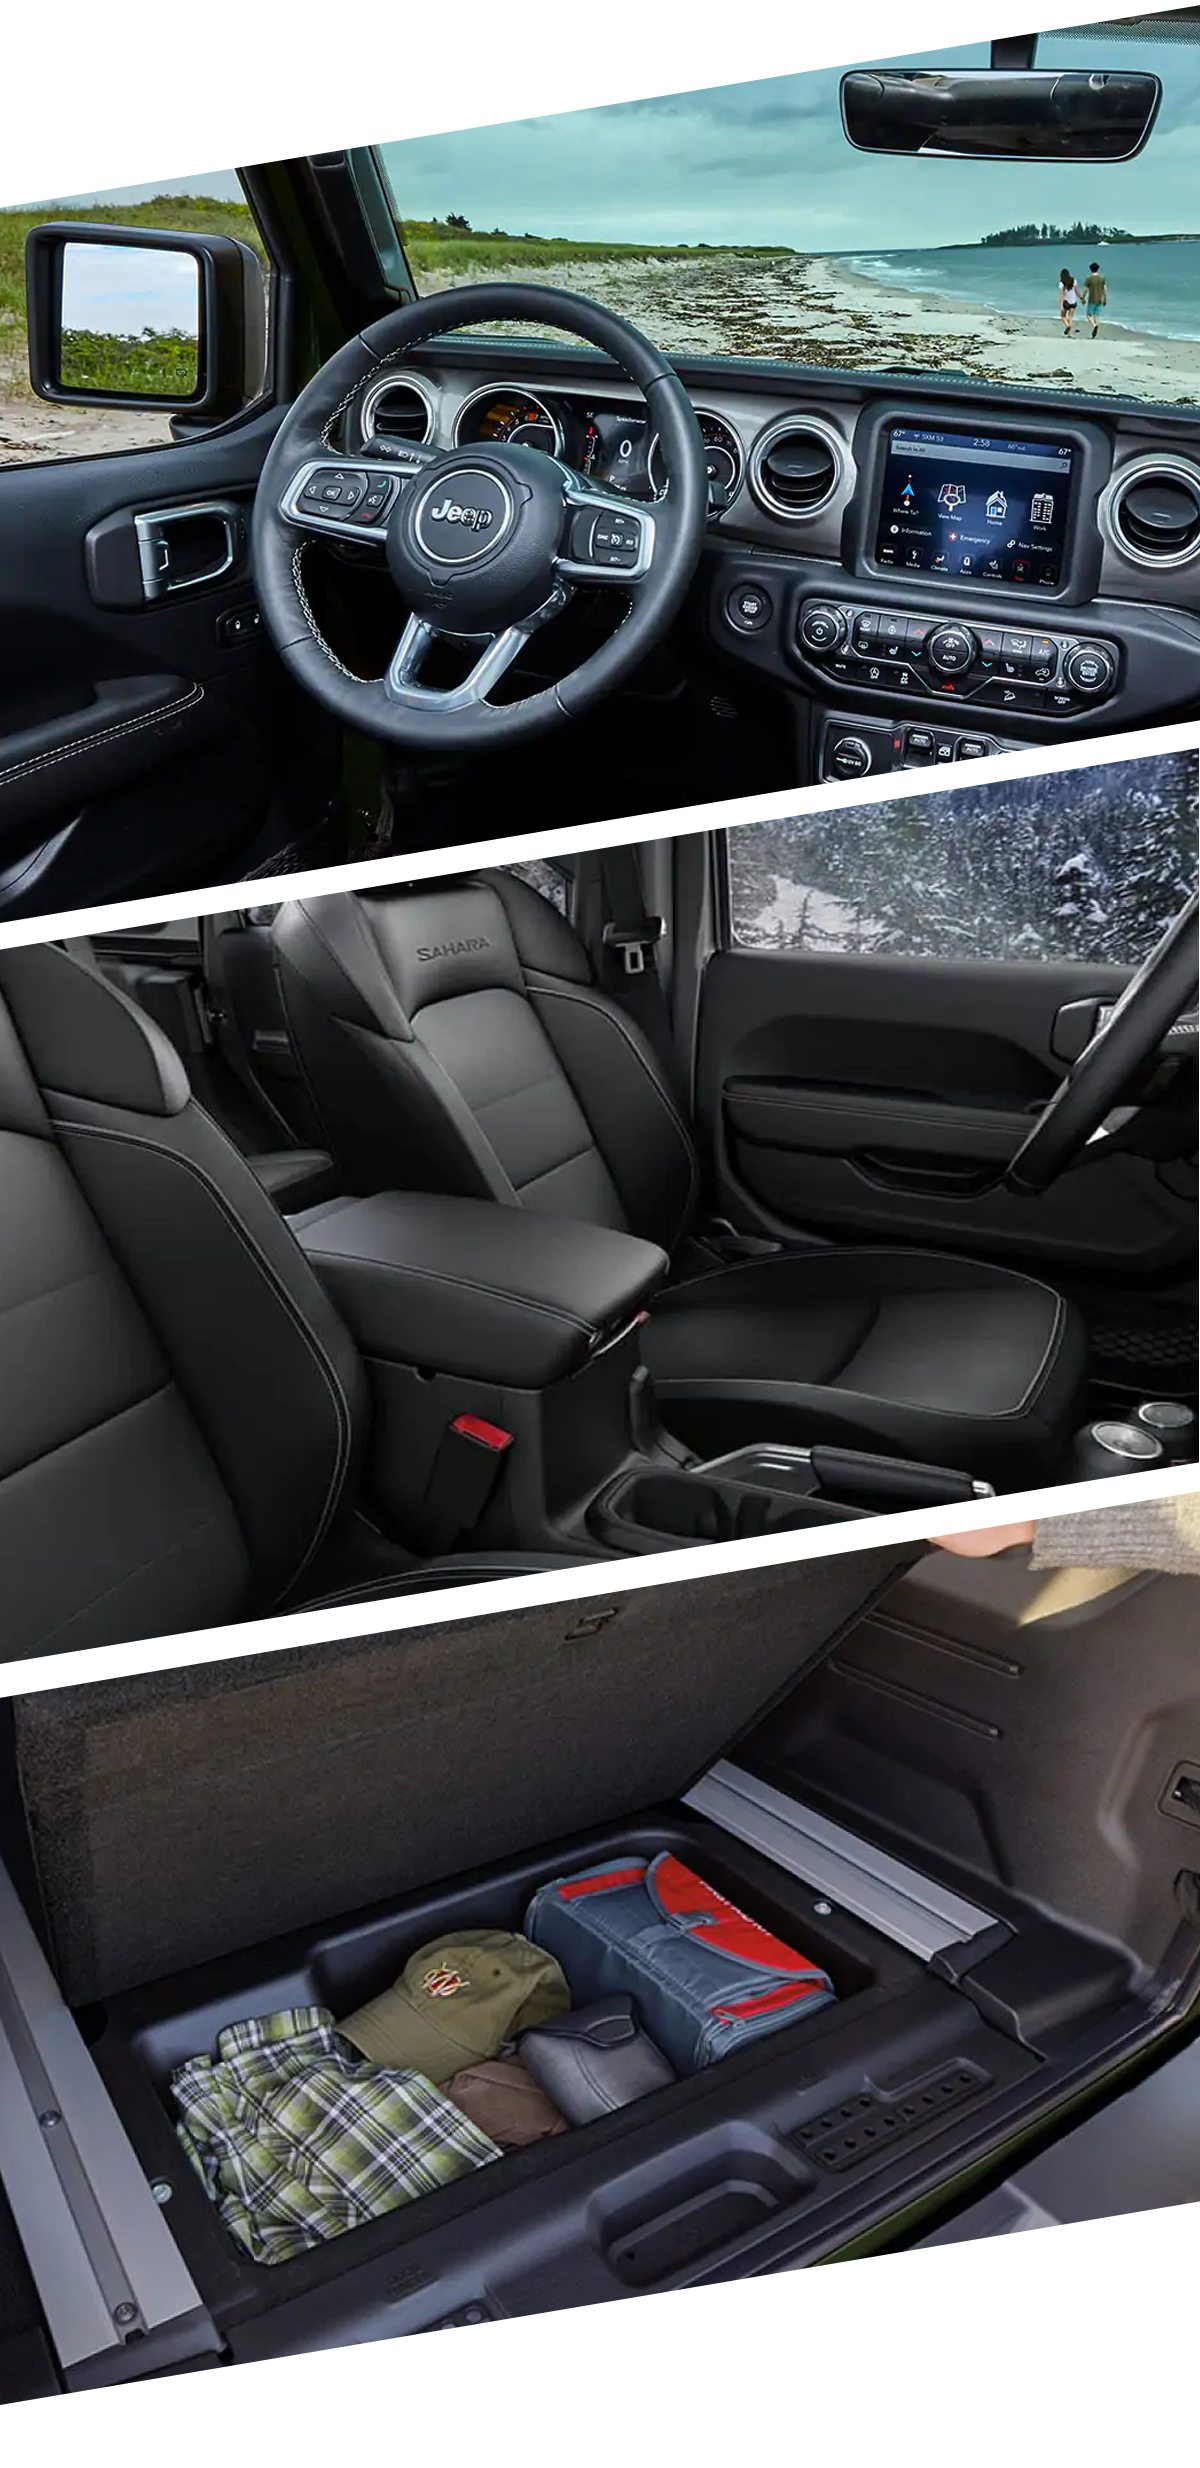 2021 Jeep Wrangler Interior Lucedale, MS